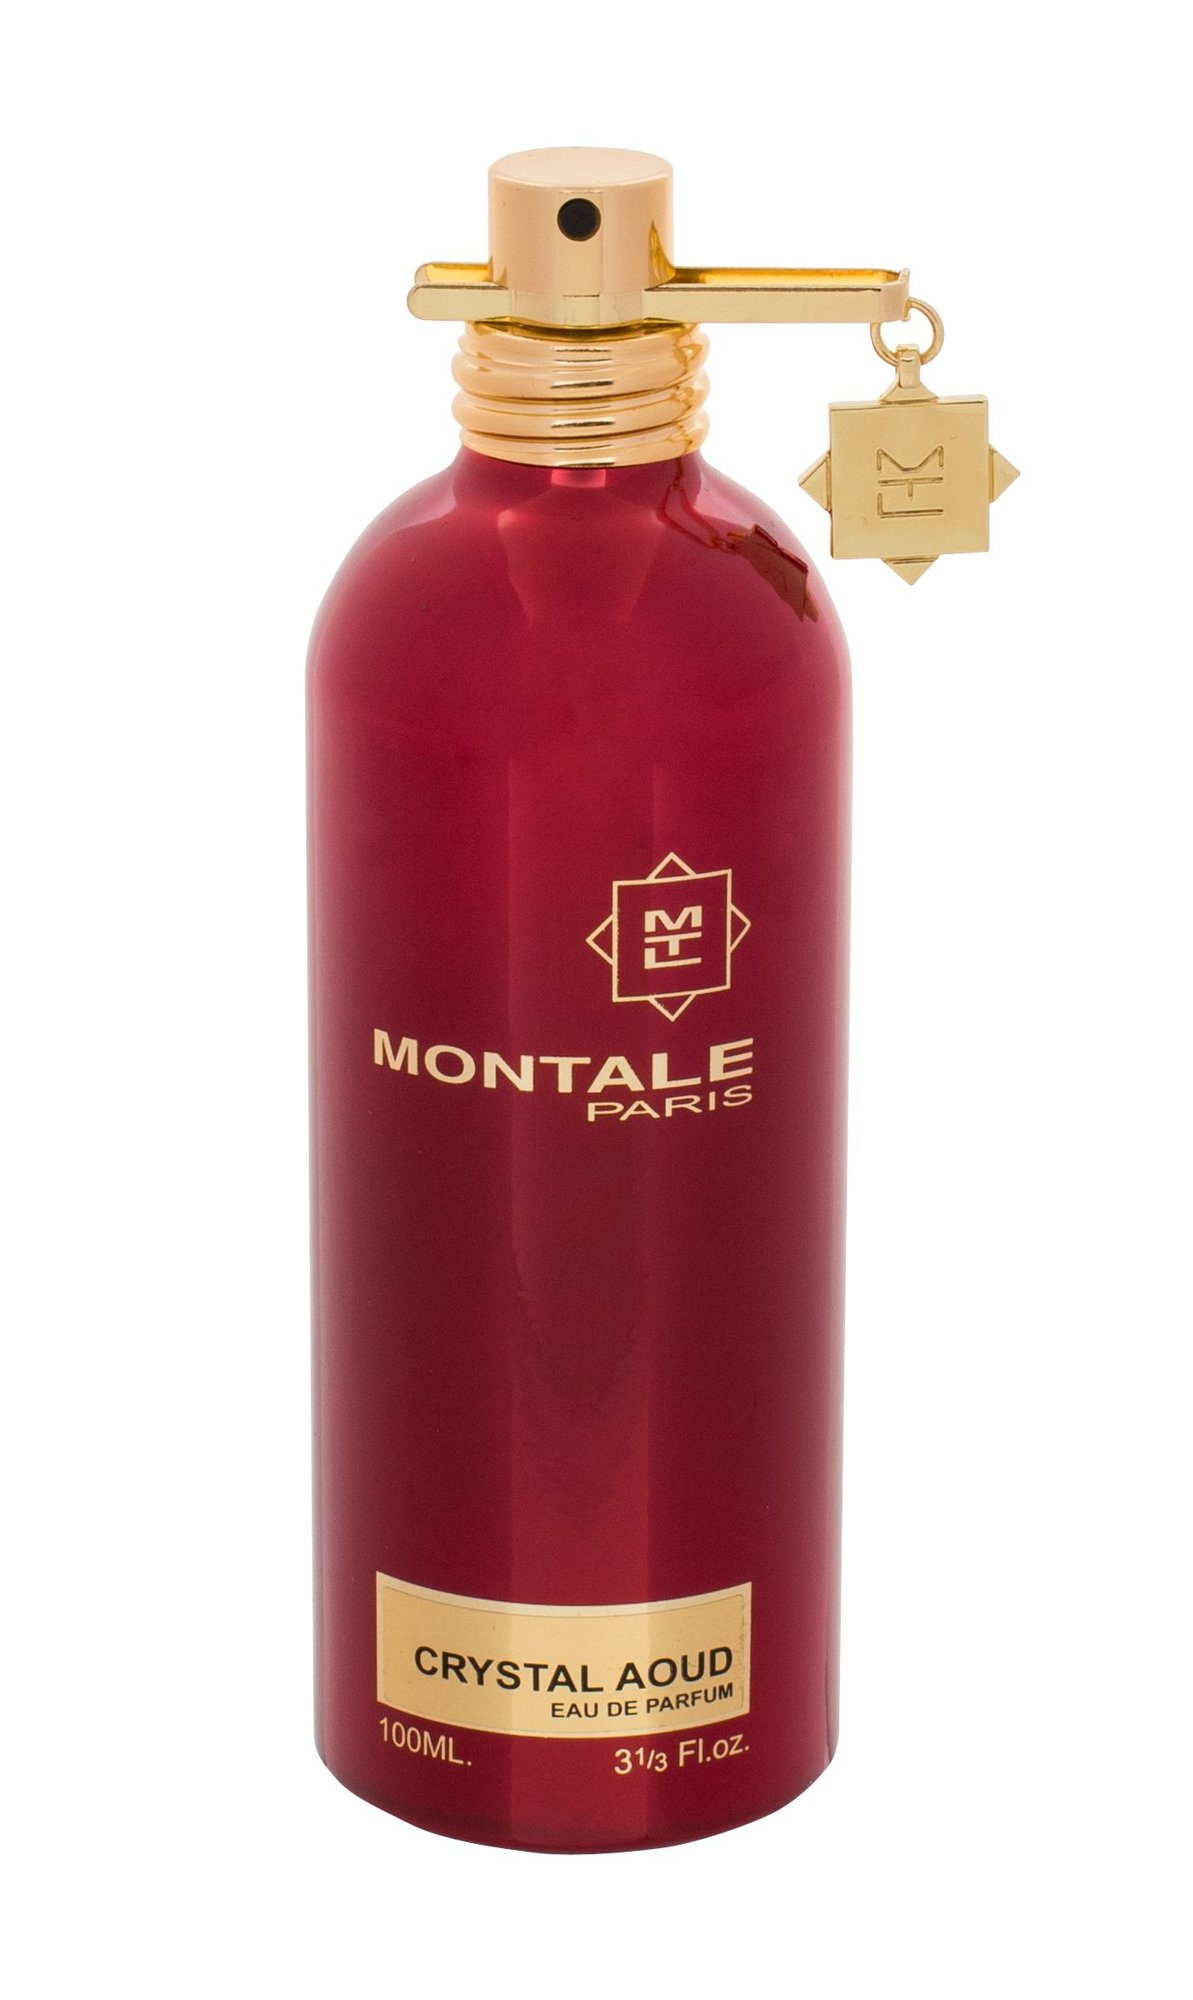 Montale Paris Crystal Aoud EDP 100ml